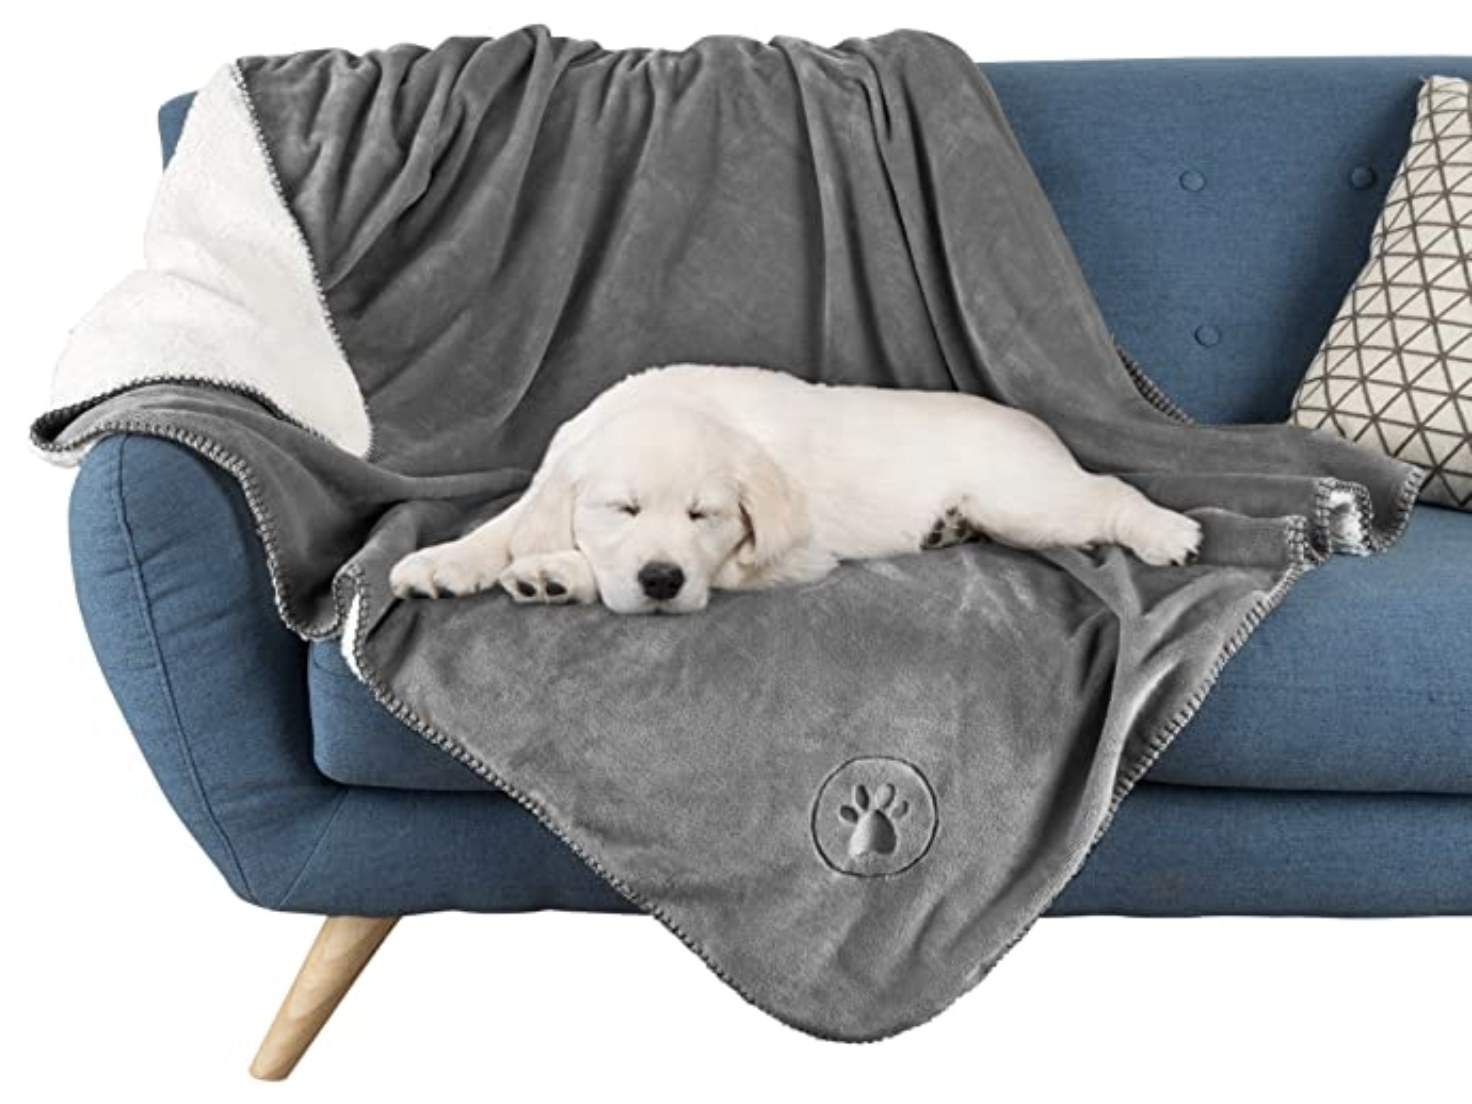 A yellow lab puppy sleeping on a grey waterproof pet blanket